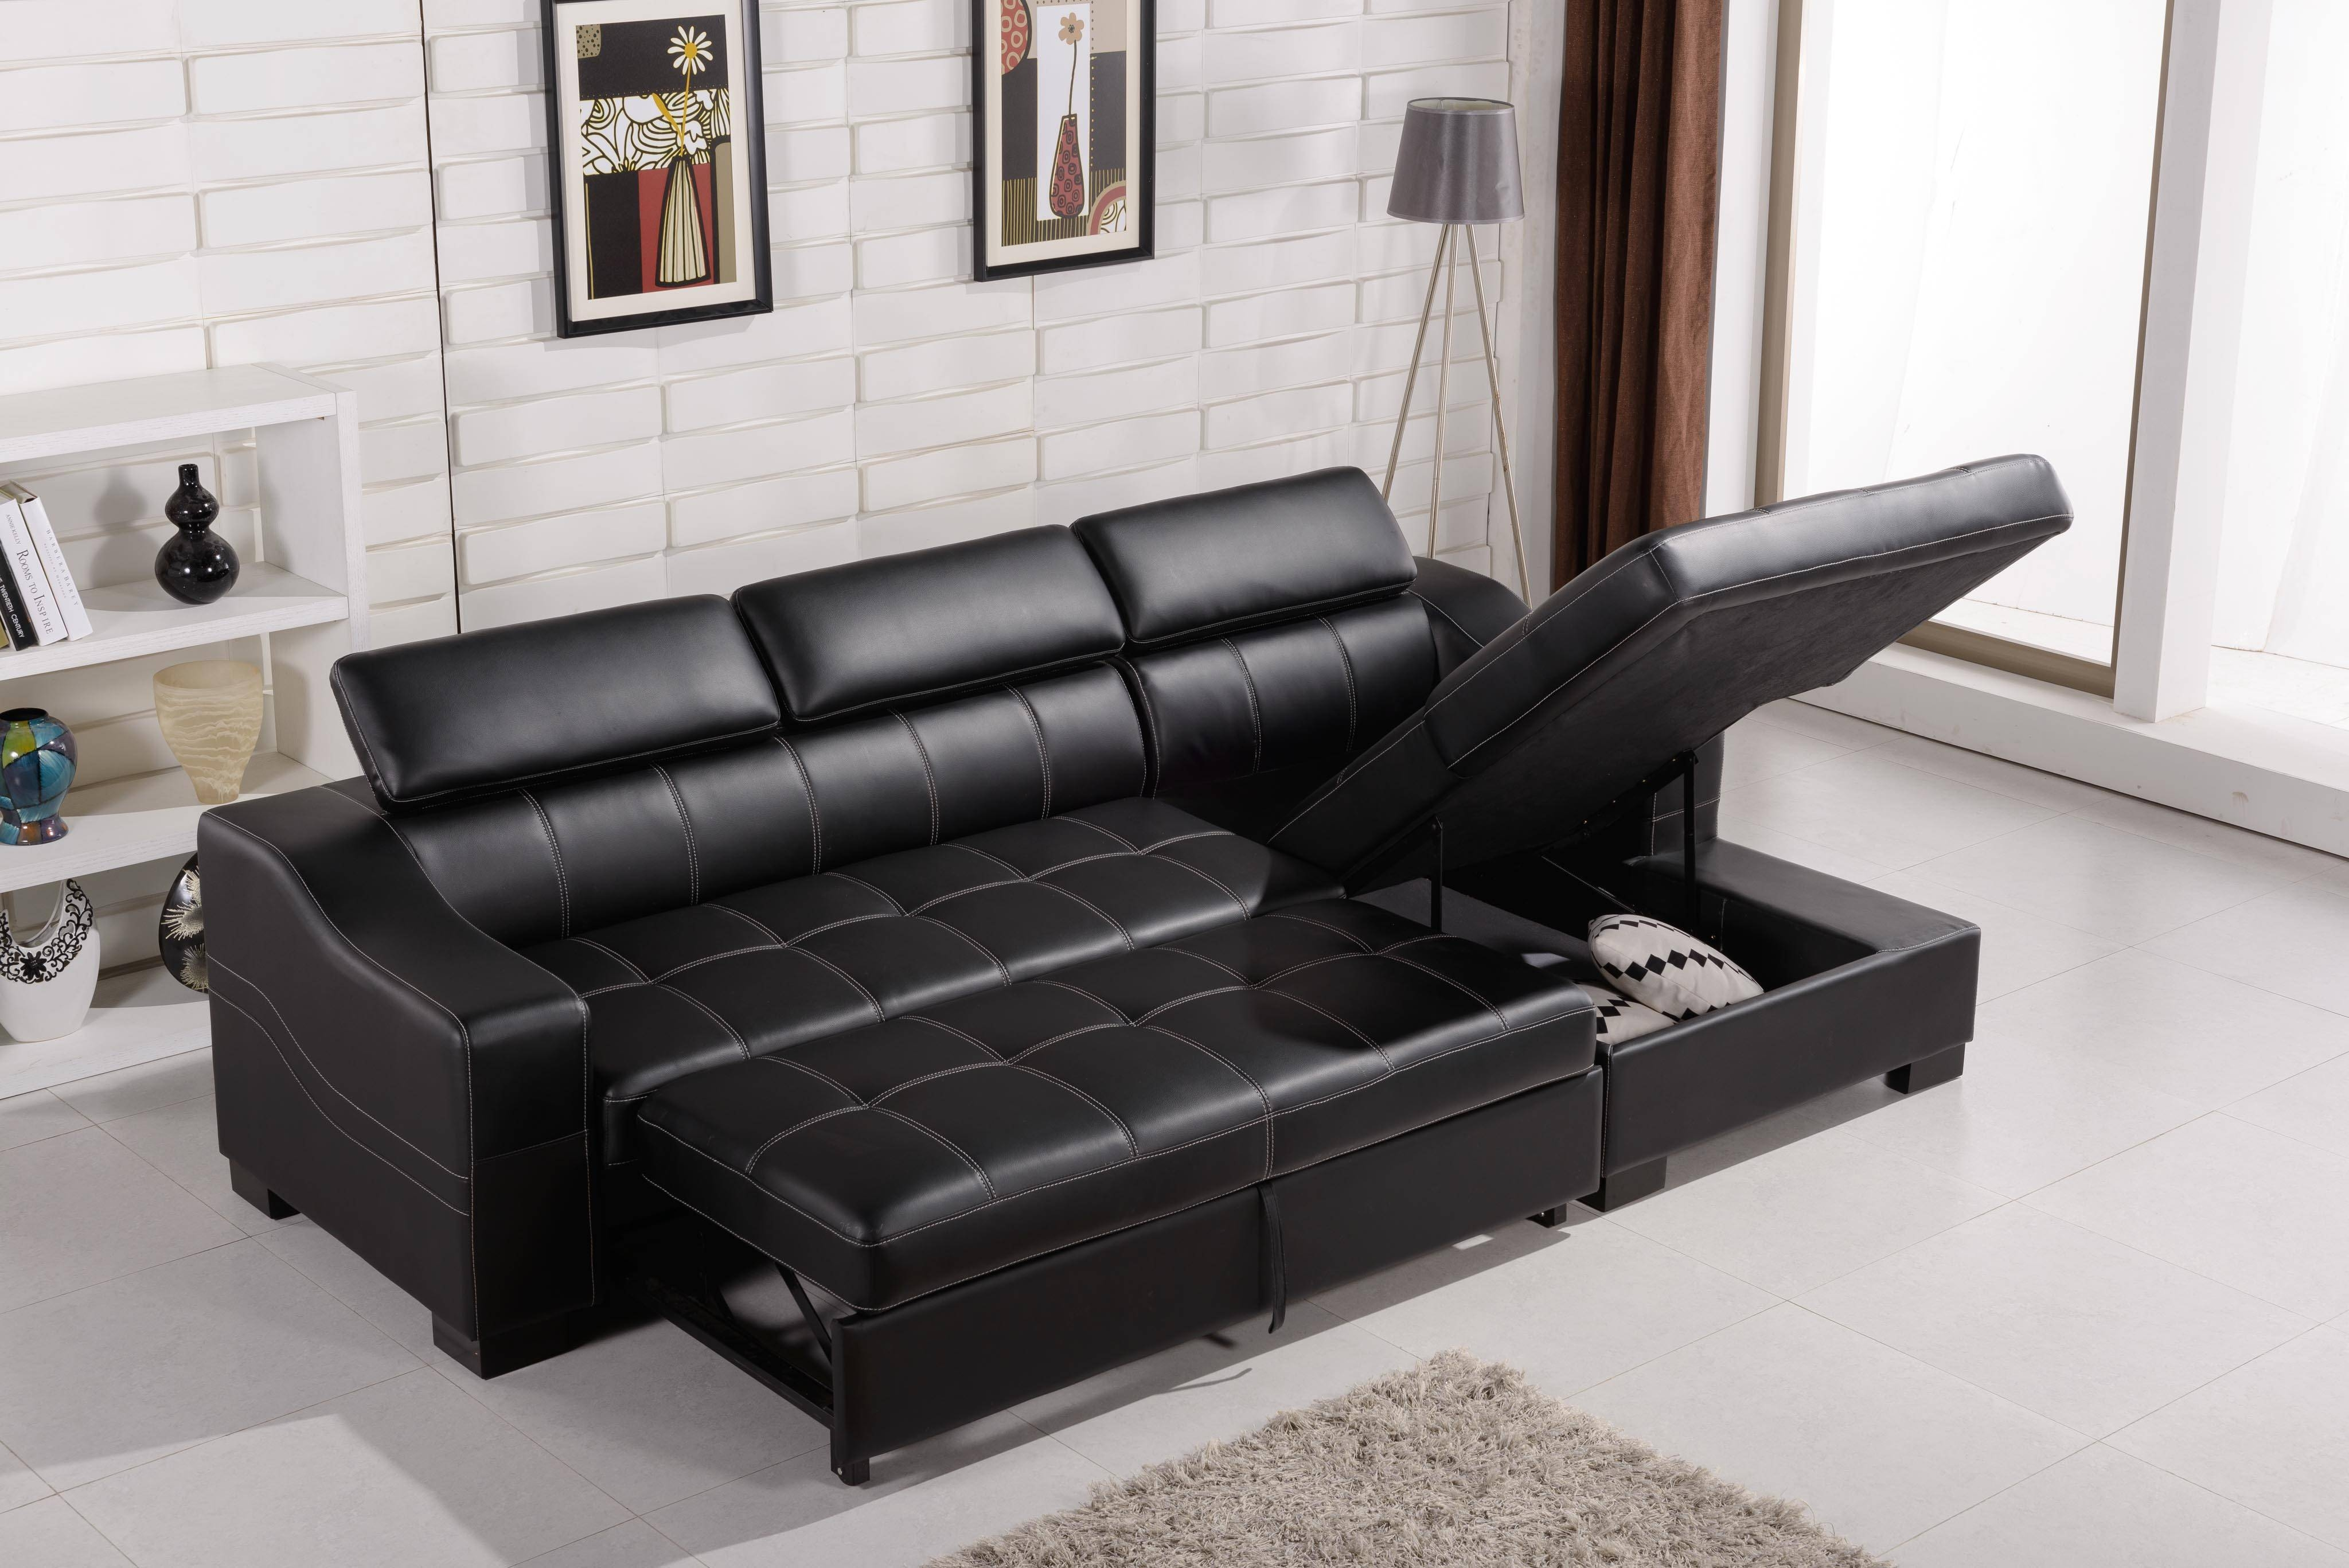 Funiture: Sleeper Sofa Ideas For Living Room Using Brown Leather Within Black Leather Chaise Sofas (View 14 of 15)